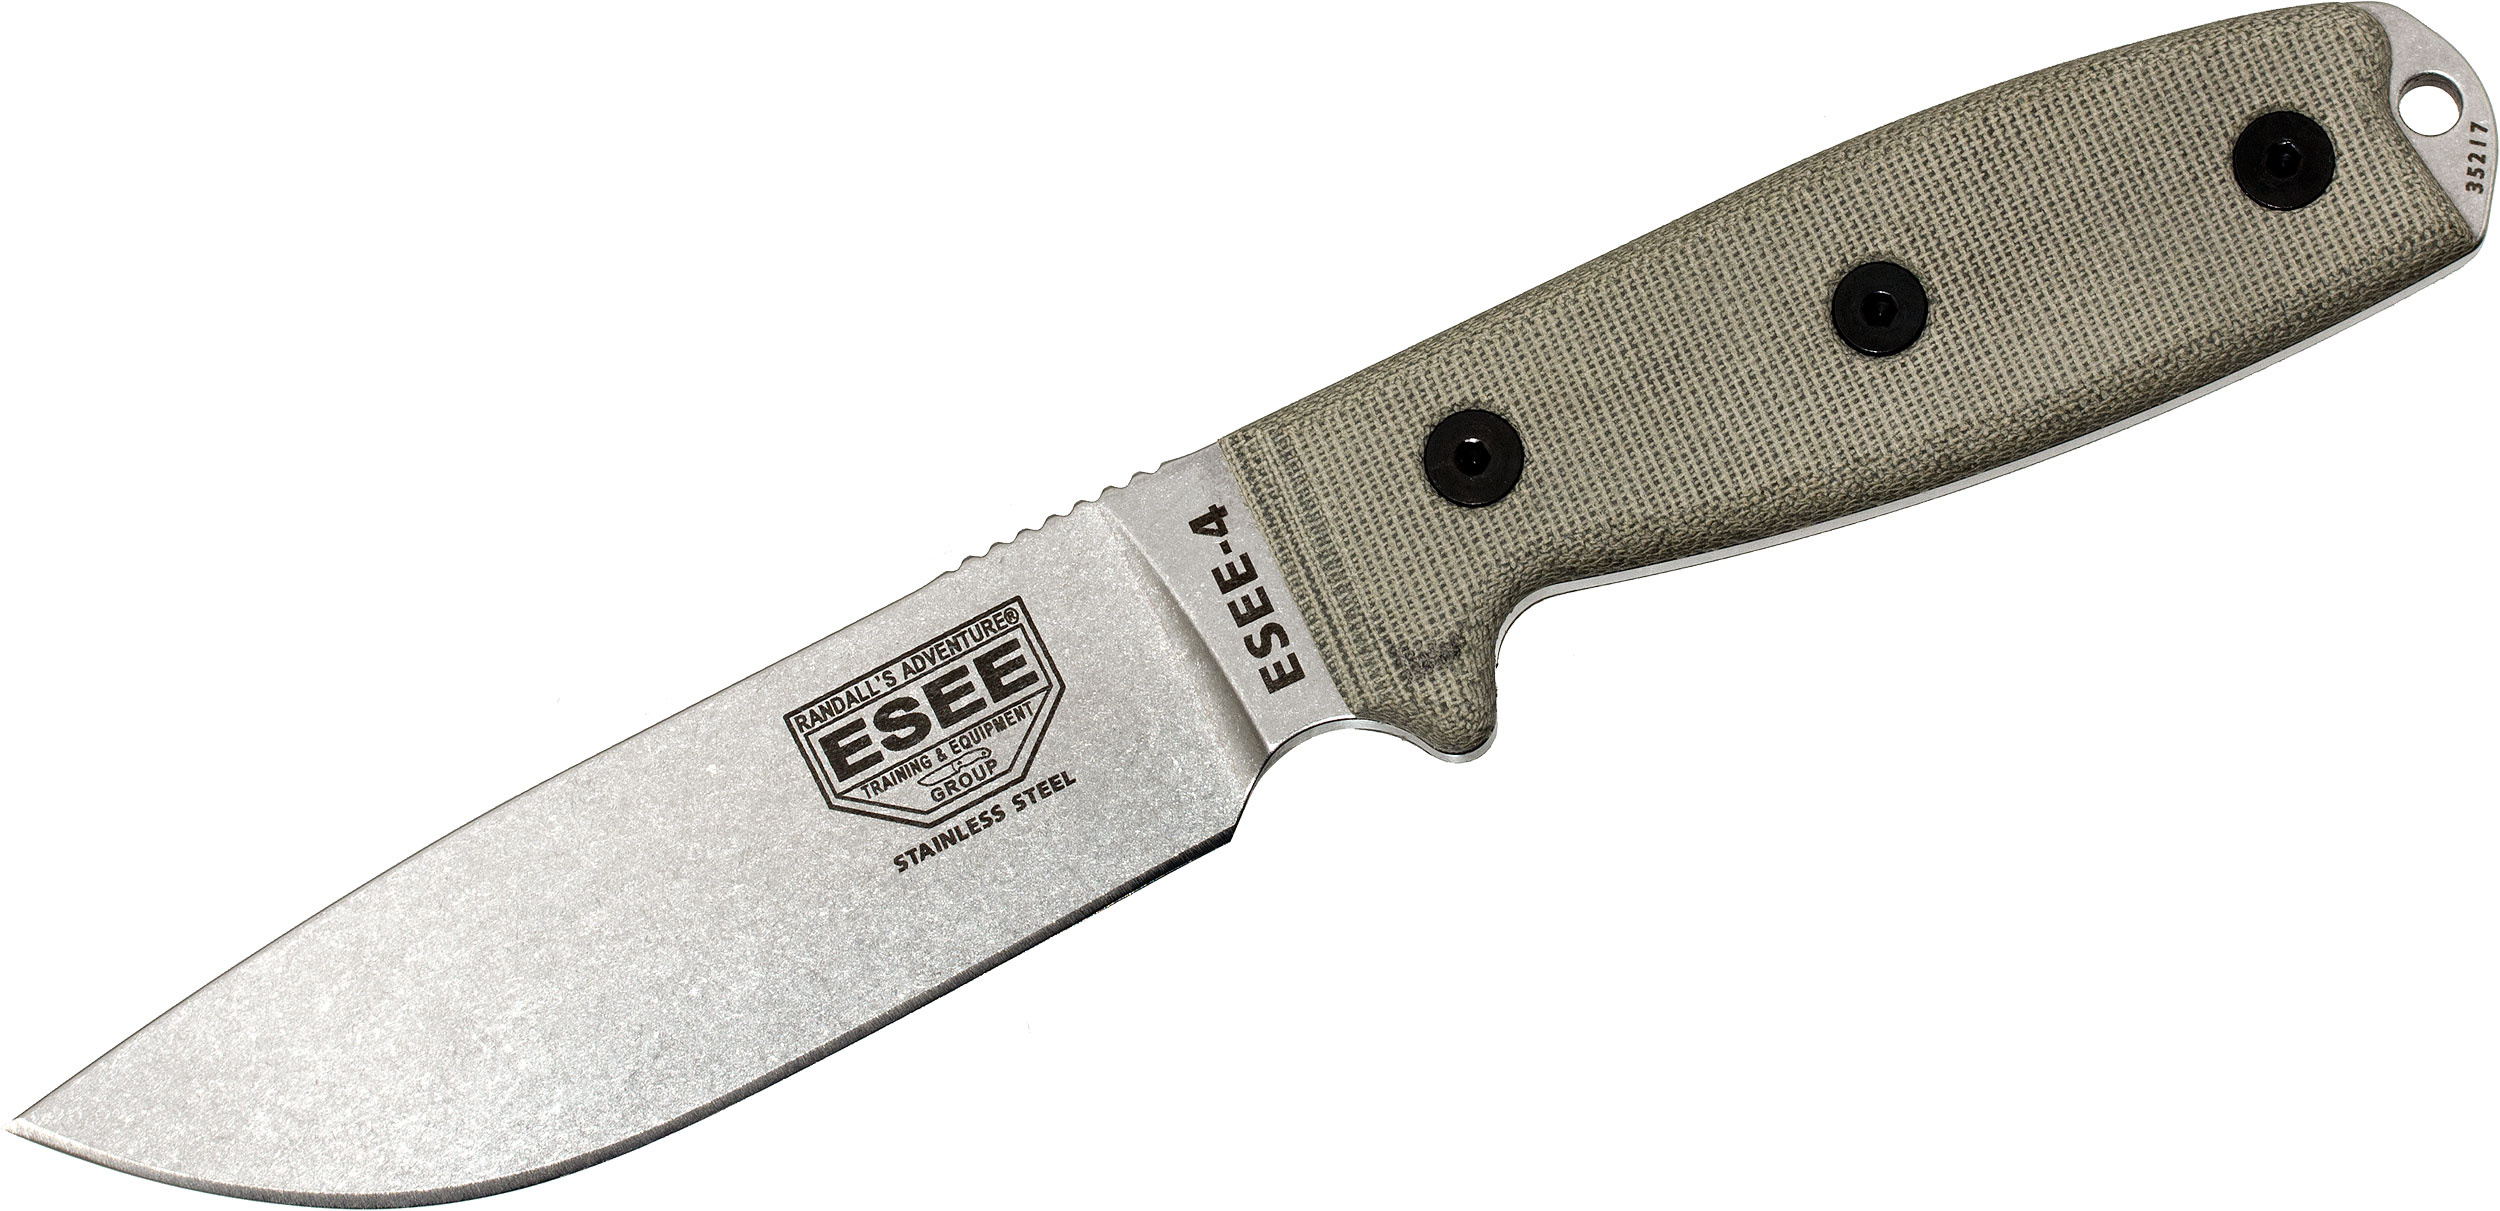 ESEE Knives ESEE-4P-MB-SS 440C Stainless Plain Edge, Black Sheath, MOLLE Back and Clip Plate